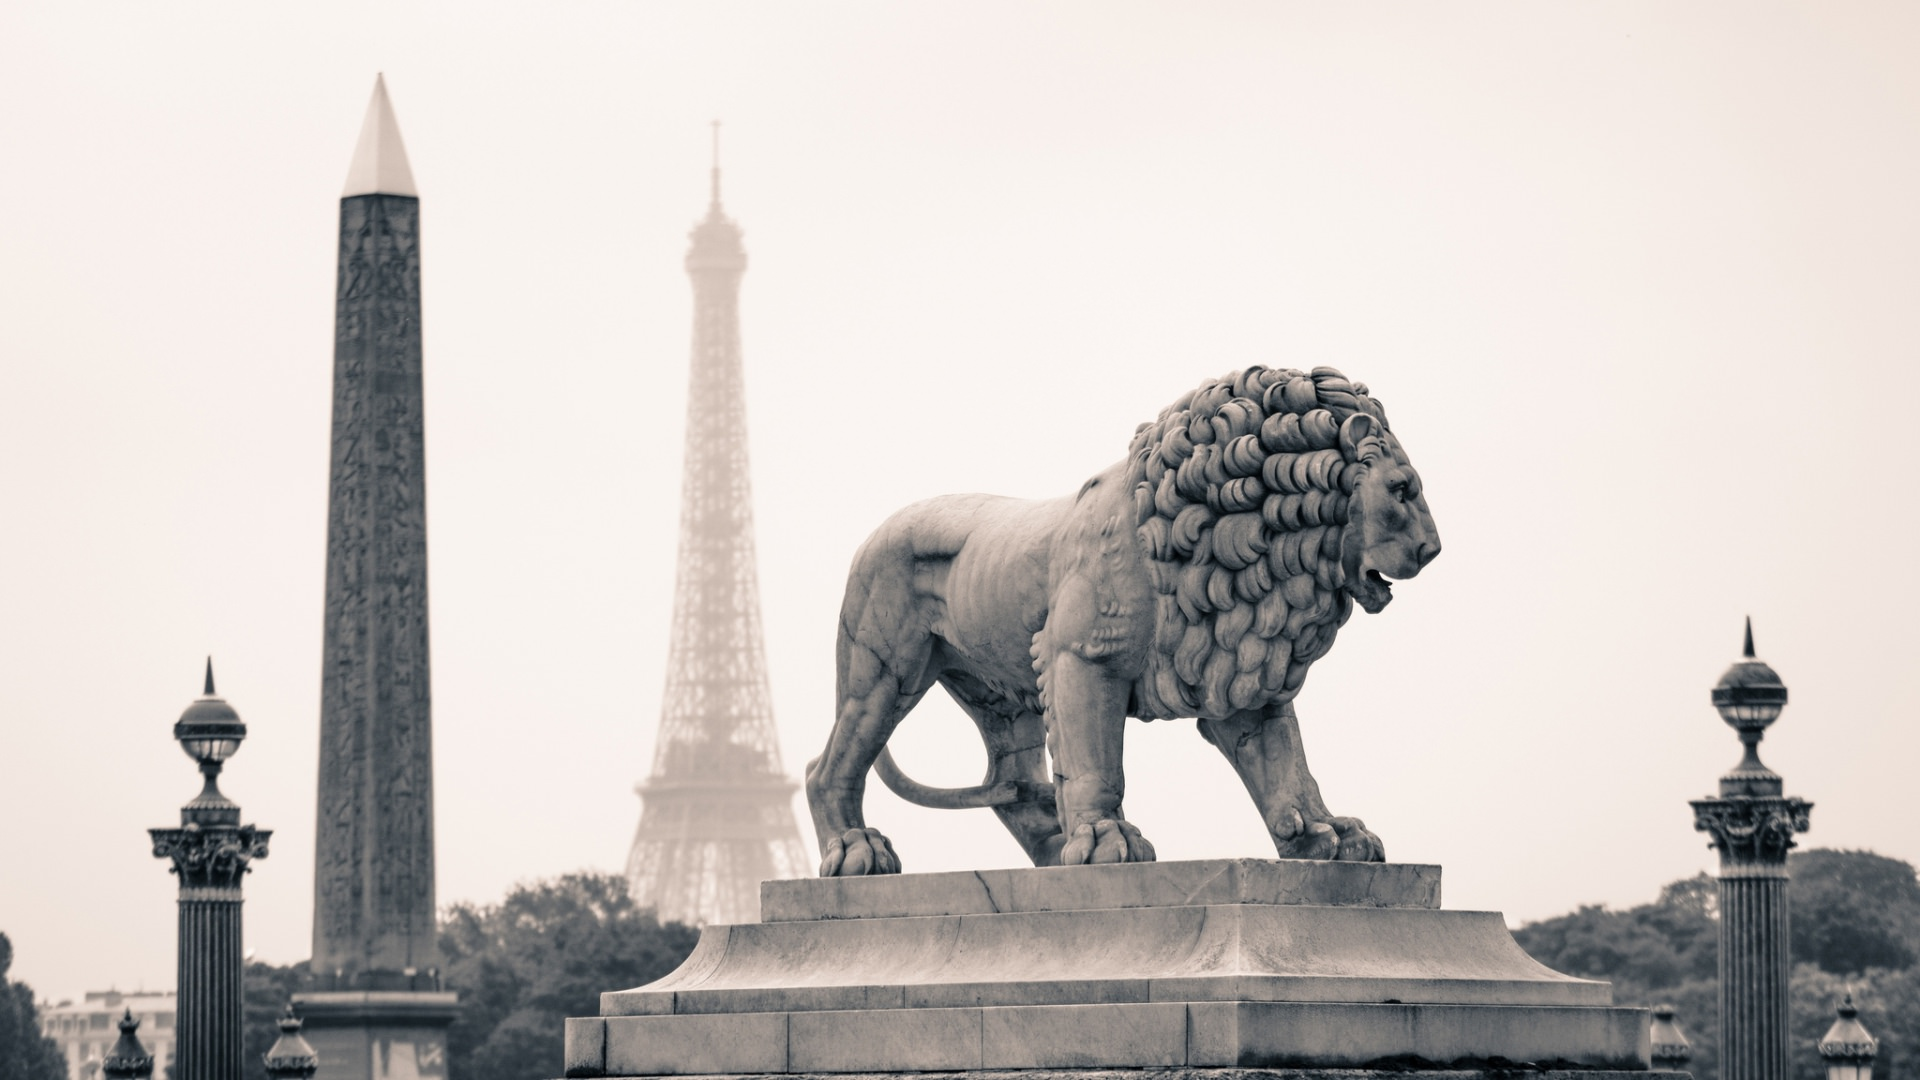 paris elegant monuments statue of lion